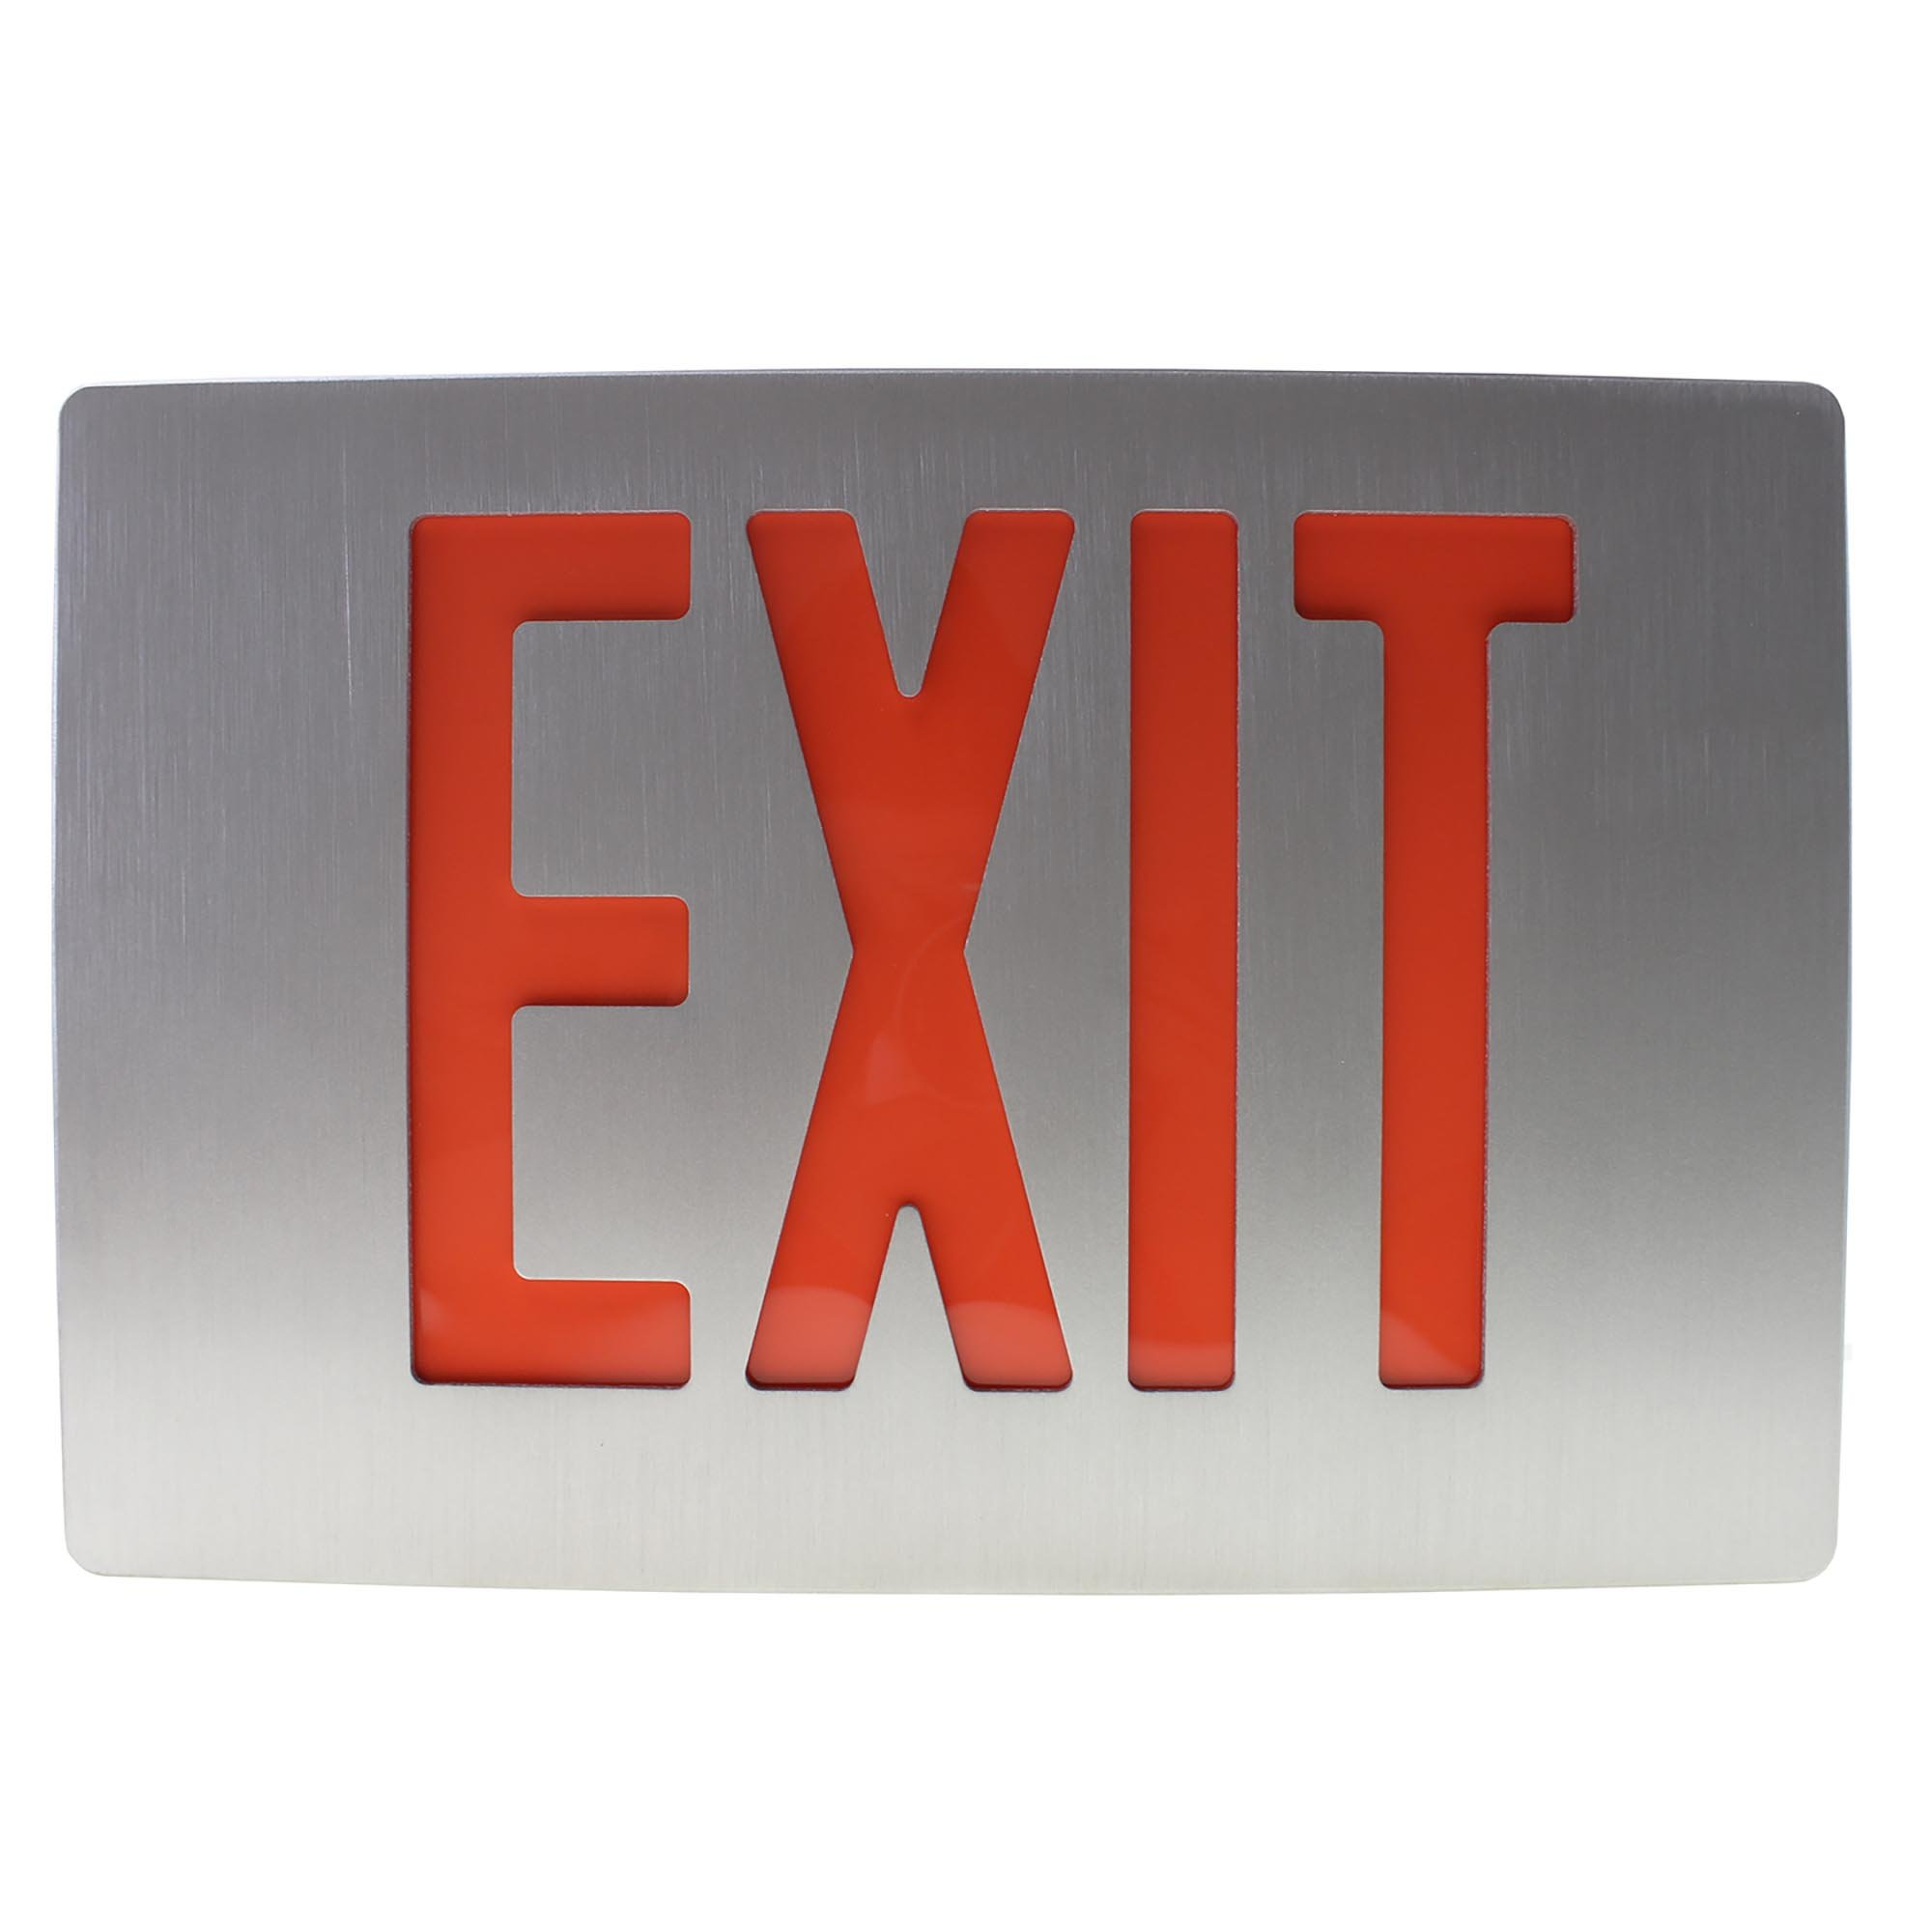 Day-Brite McPhilben ER55LD3R Die Cast Aluminum LED Exit Sign, Red, 120/277V